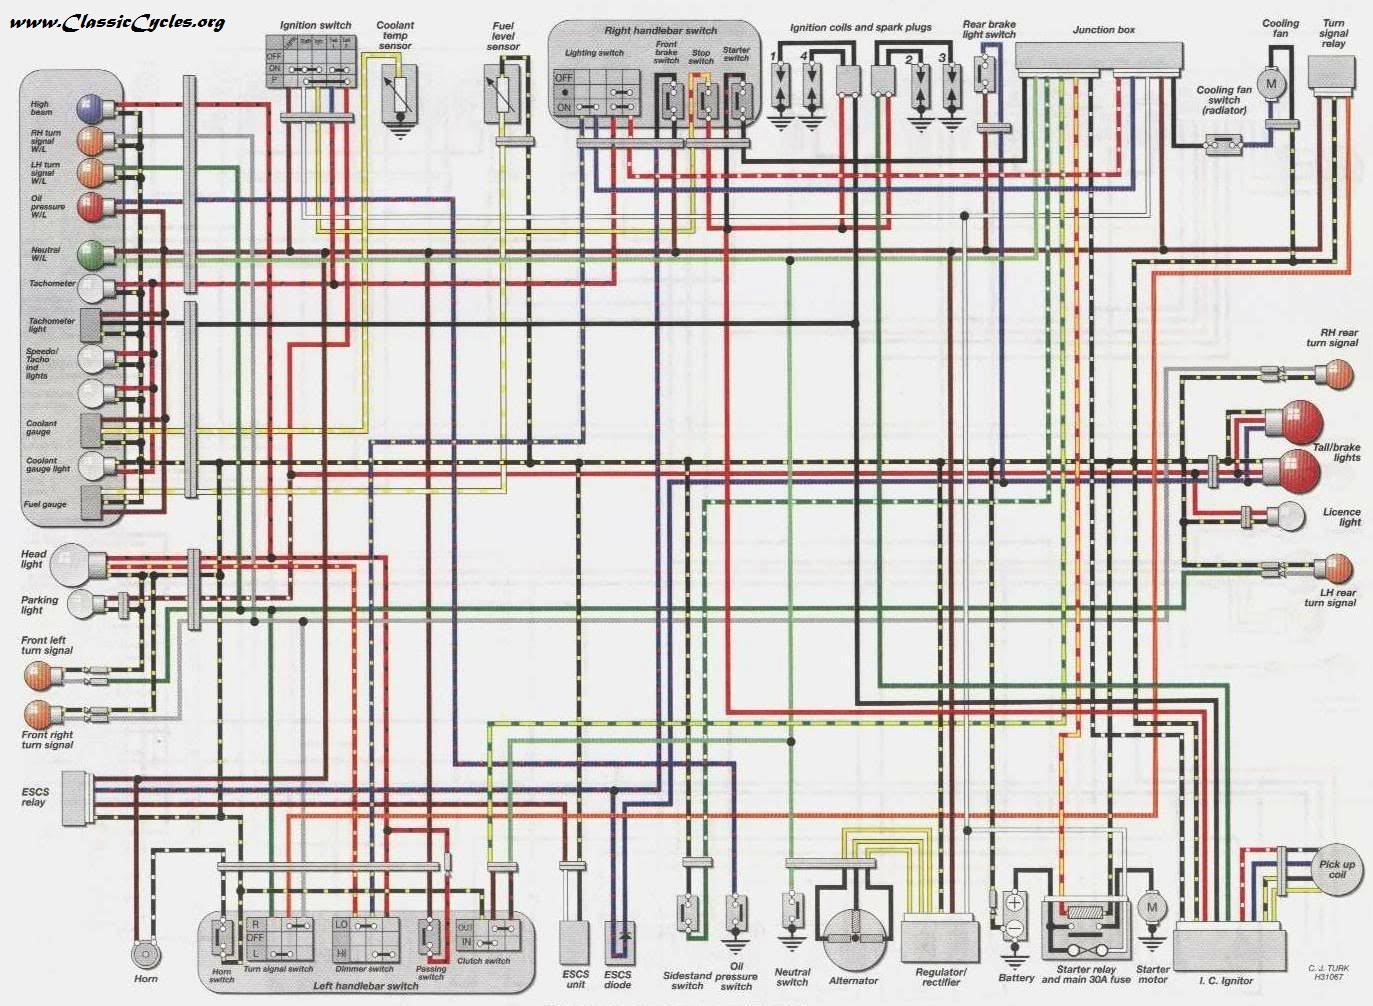 Enjoyable 2006 Zx6R Fuse Box Wiring Diagram Wiring Cloud Timewinrebemohammedshrineorg